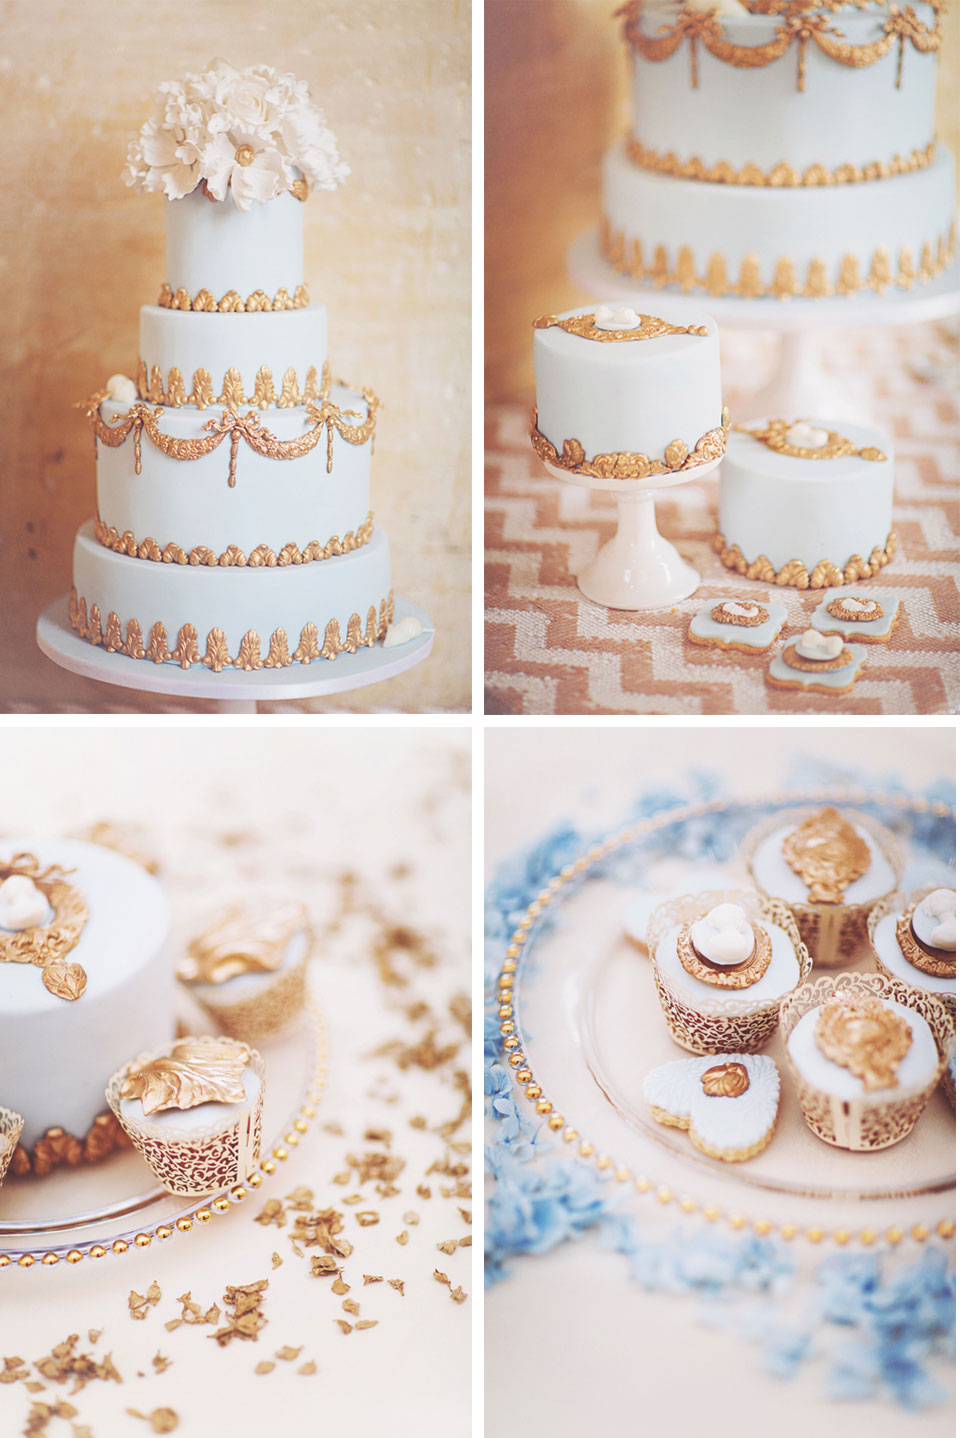 How to add a touch of Cinderella to your Wedding – The Sweet Party Shop